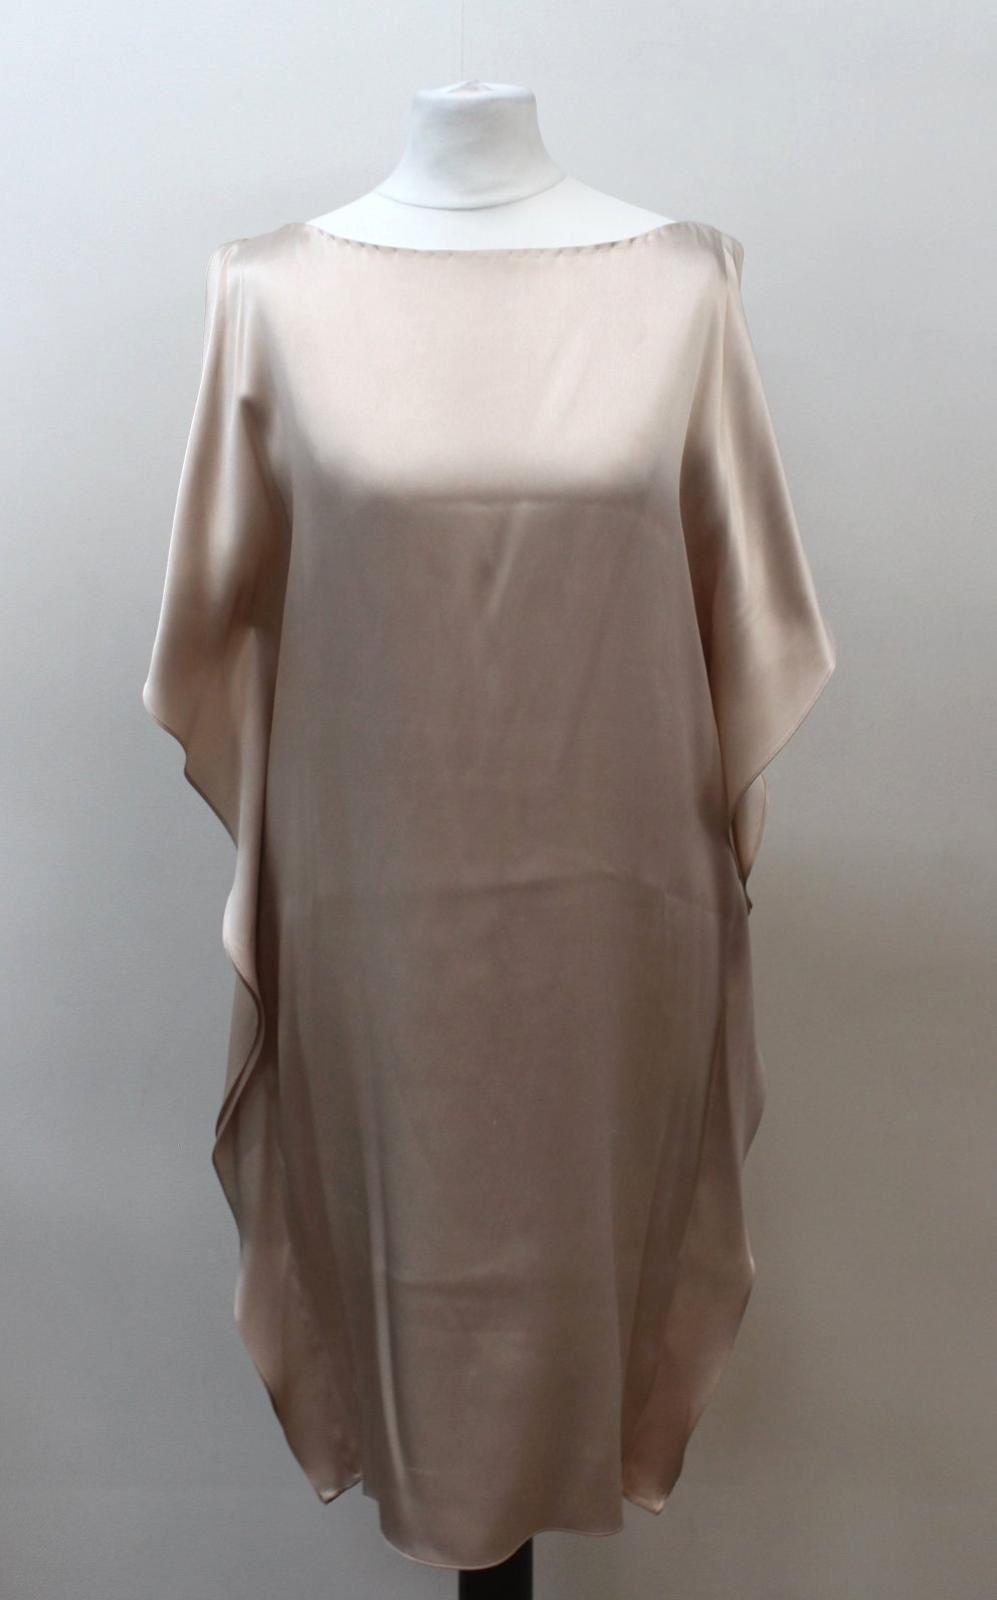 JOSEPH-Ladies-Beige-Nude-Silk-Satin-Slit-Sleeve-Side-Ruffle-Dress-EU36-UK8